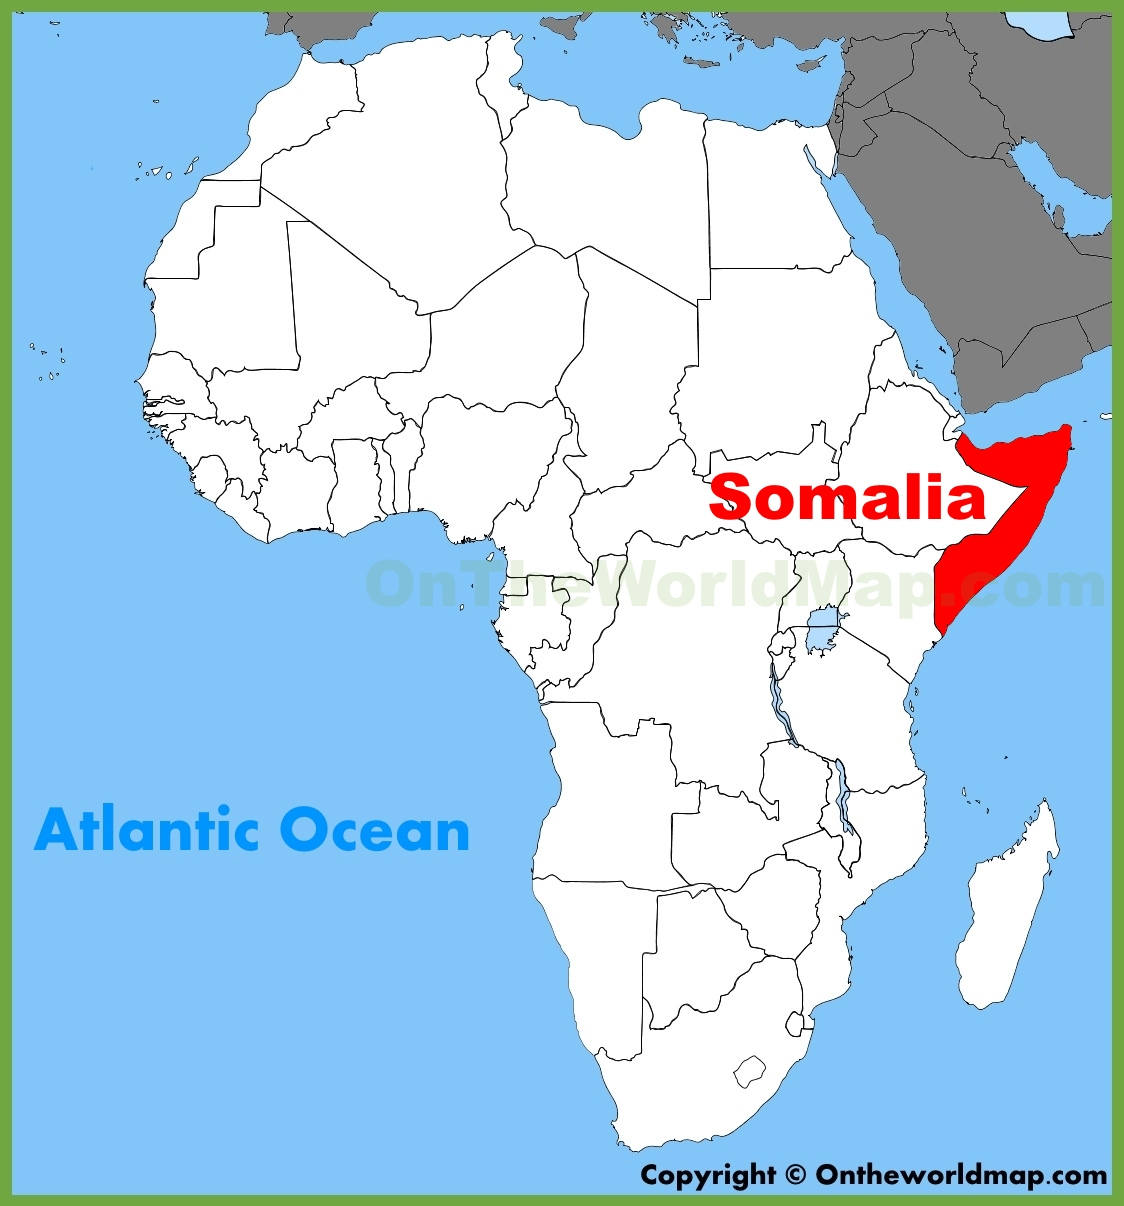 Somalia On Map Somalia location on the Africa map Somalia On Map